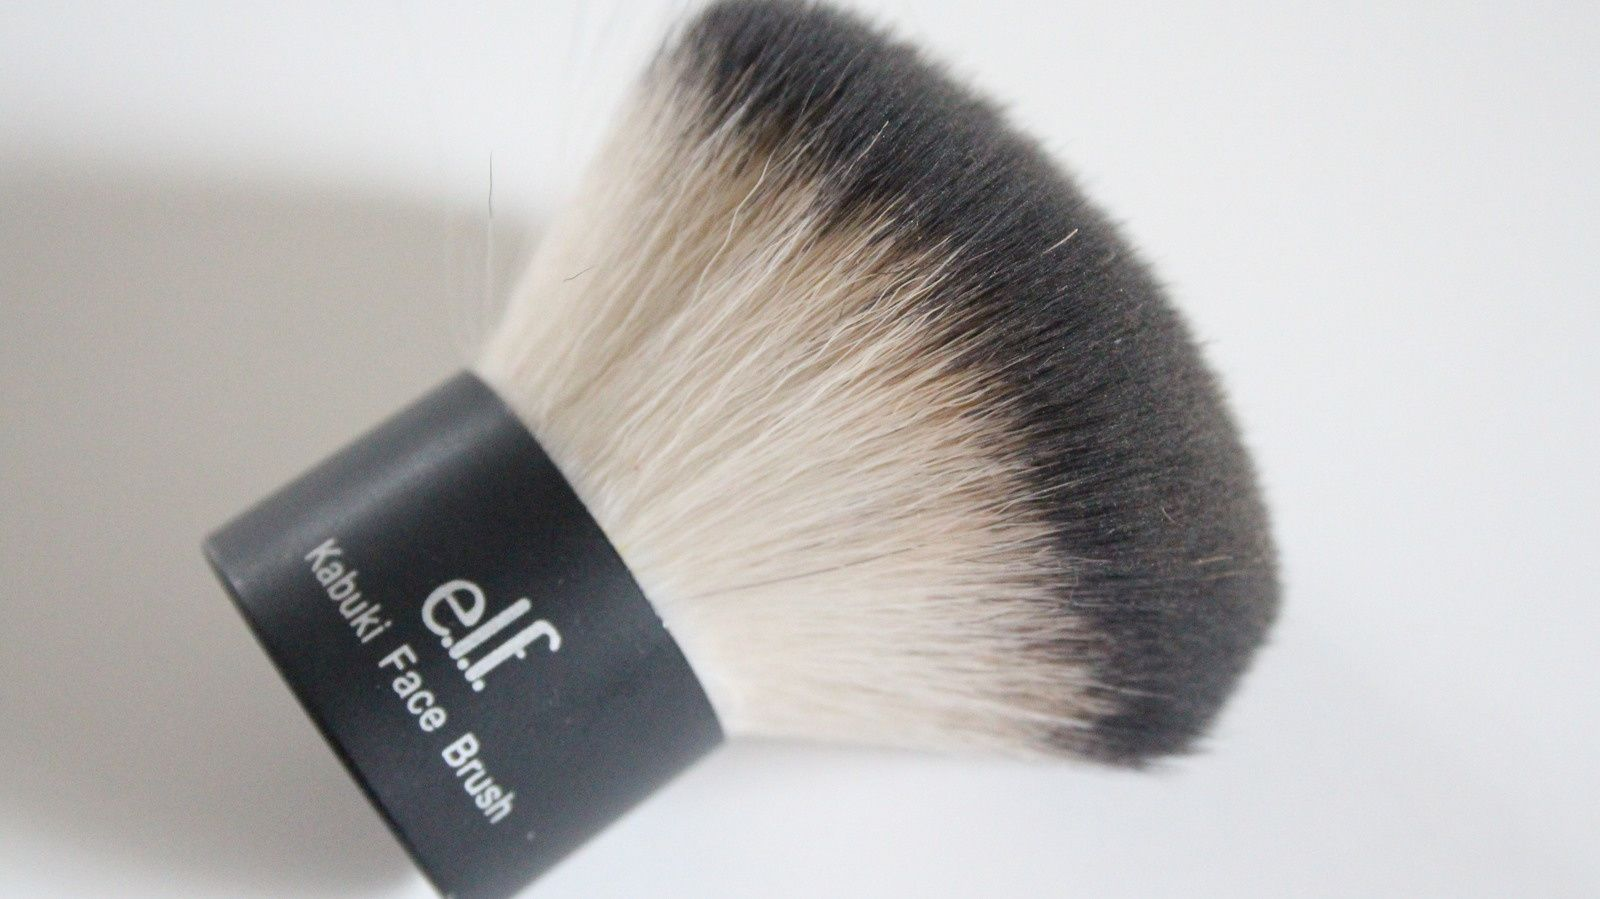 HOLY GRAIL MAKEUP BRUSHES | Drugstore &amp&#x3B; High End